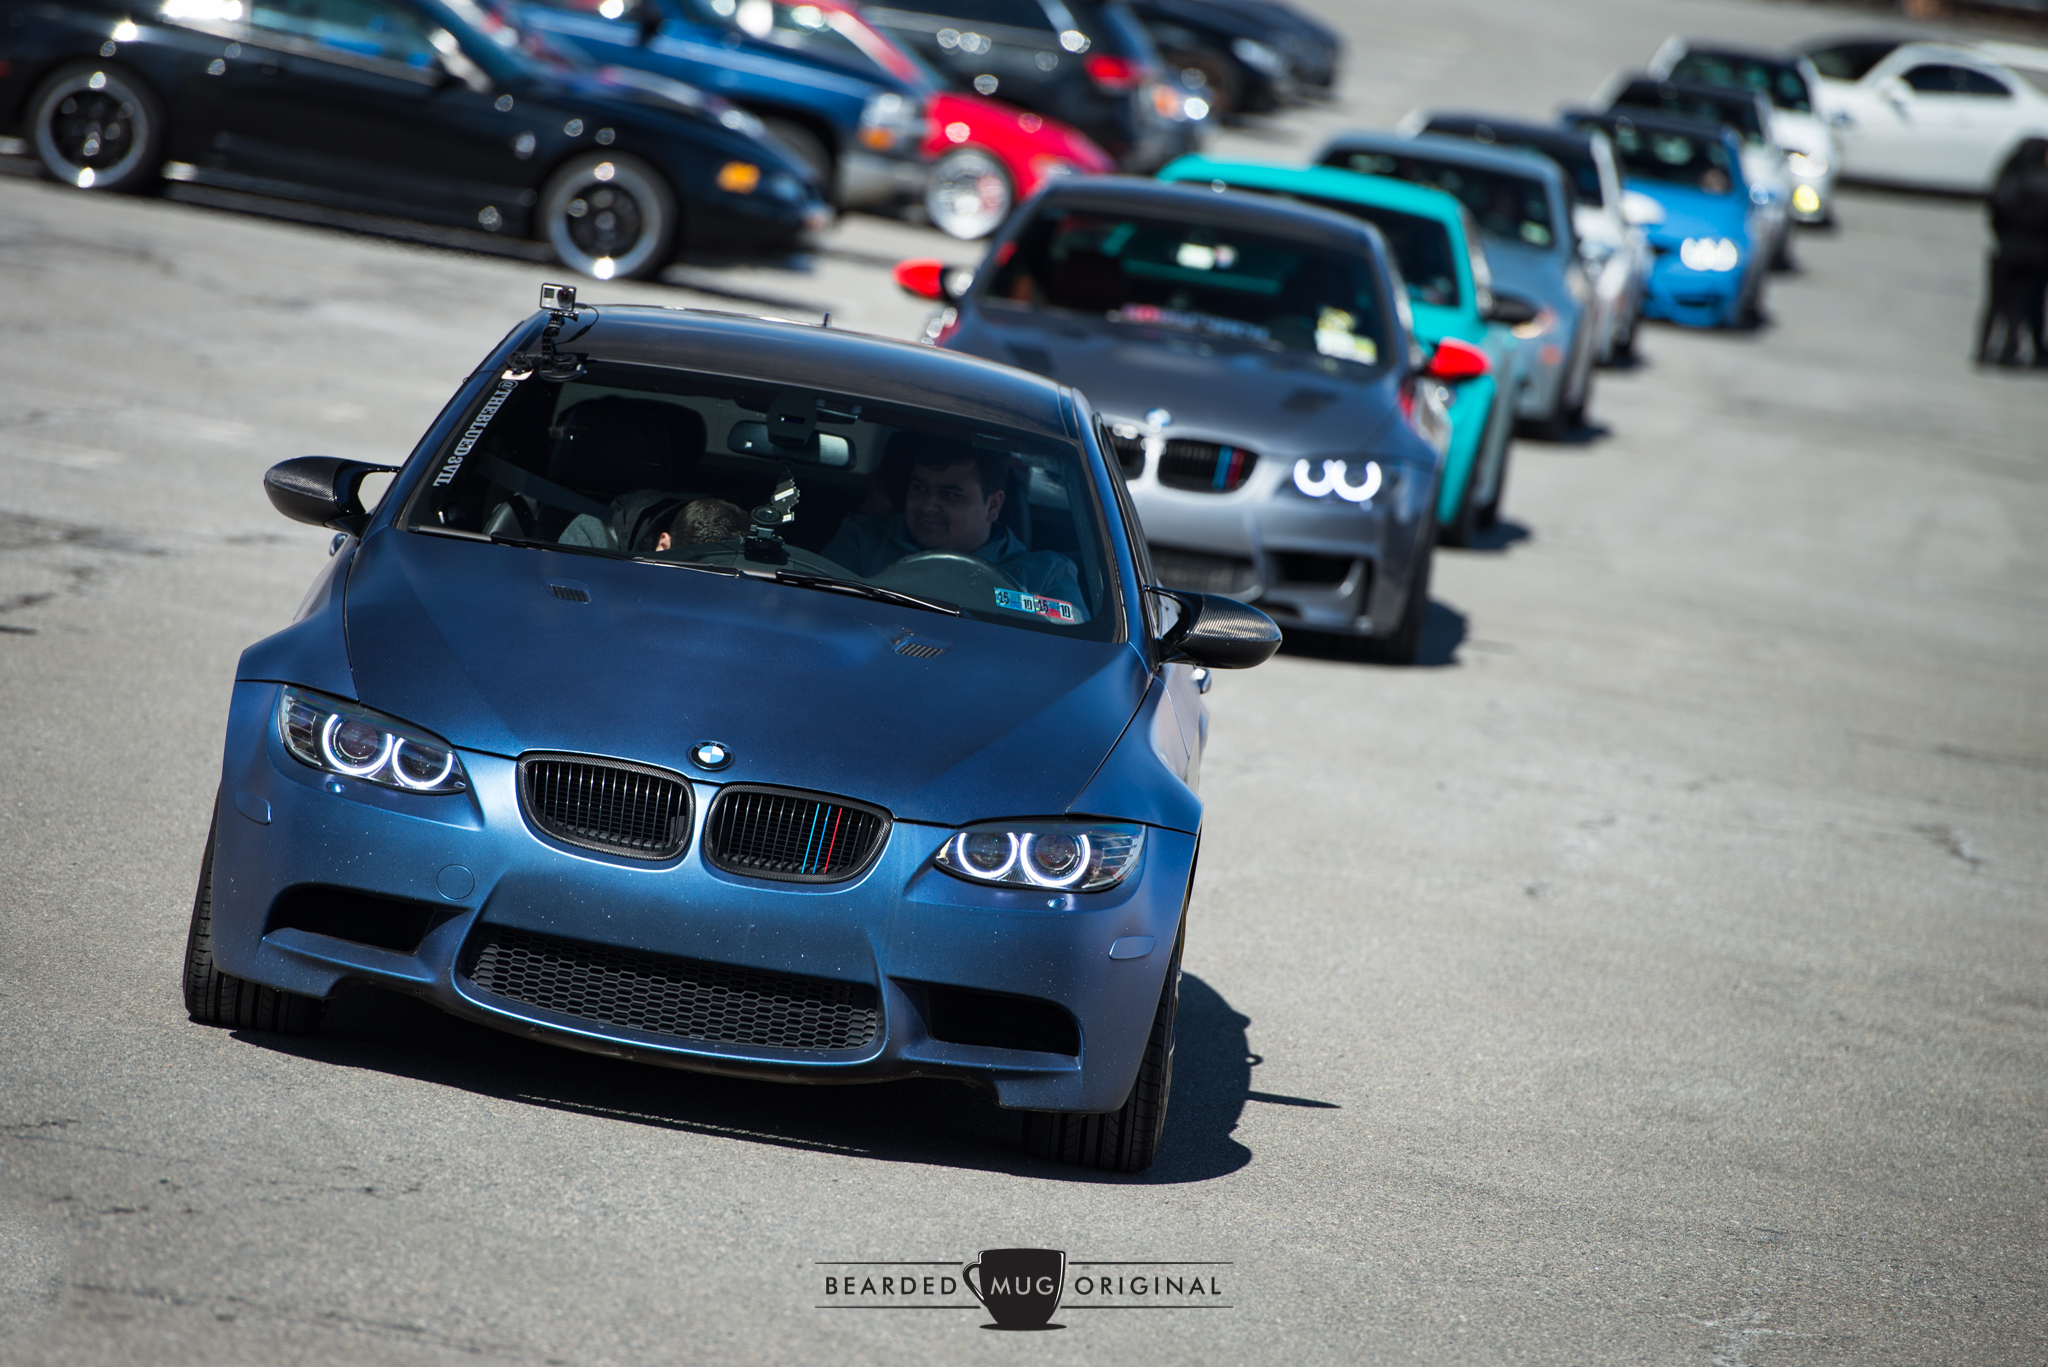 Although I didn't attend the 2016 Season Opener, Bergen Cars & Caffe's 2015 event was highly memorable.